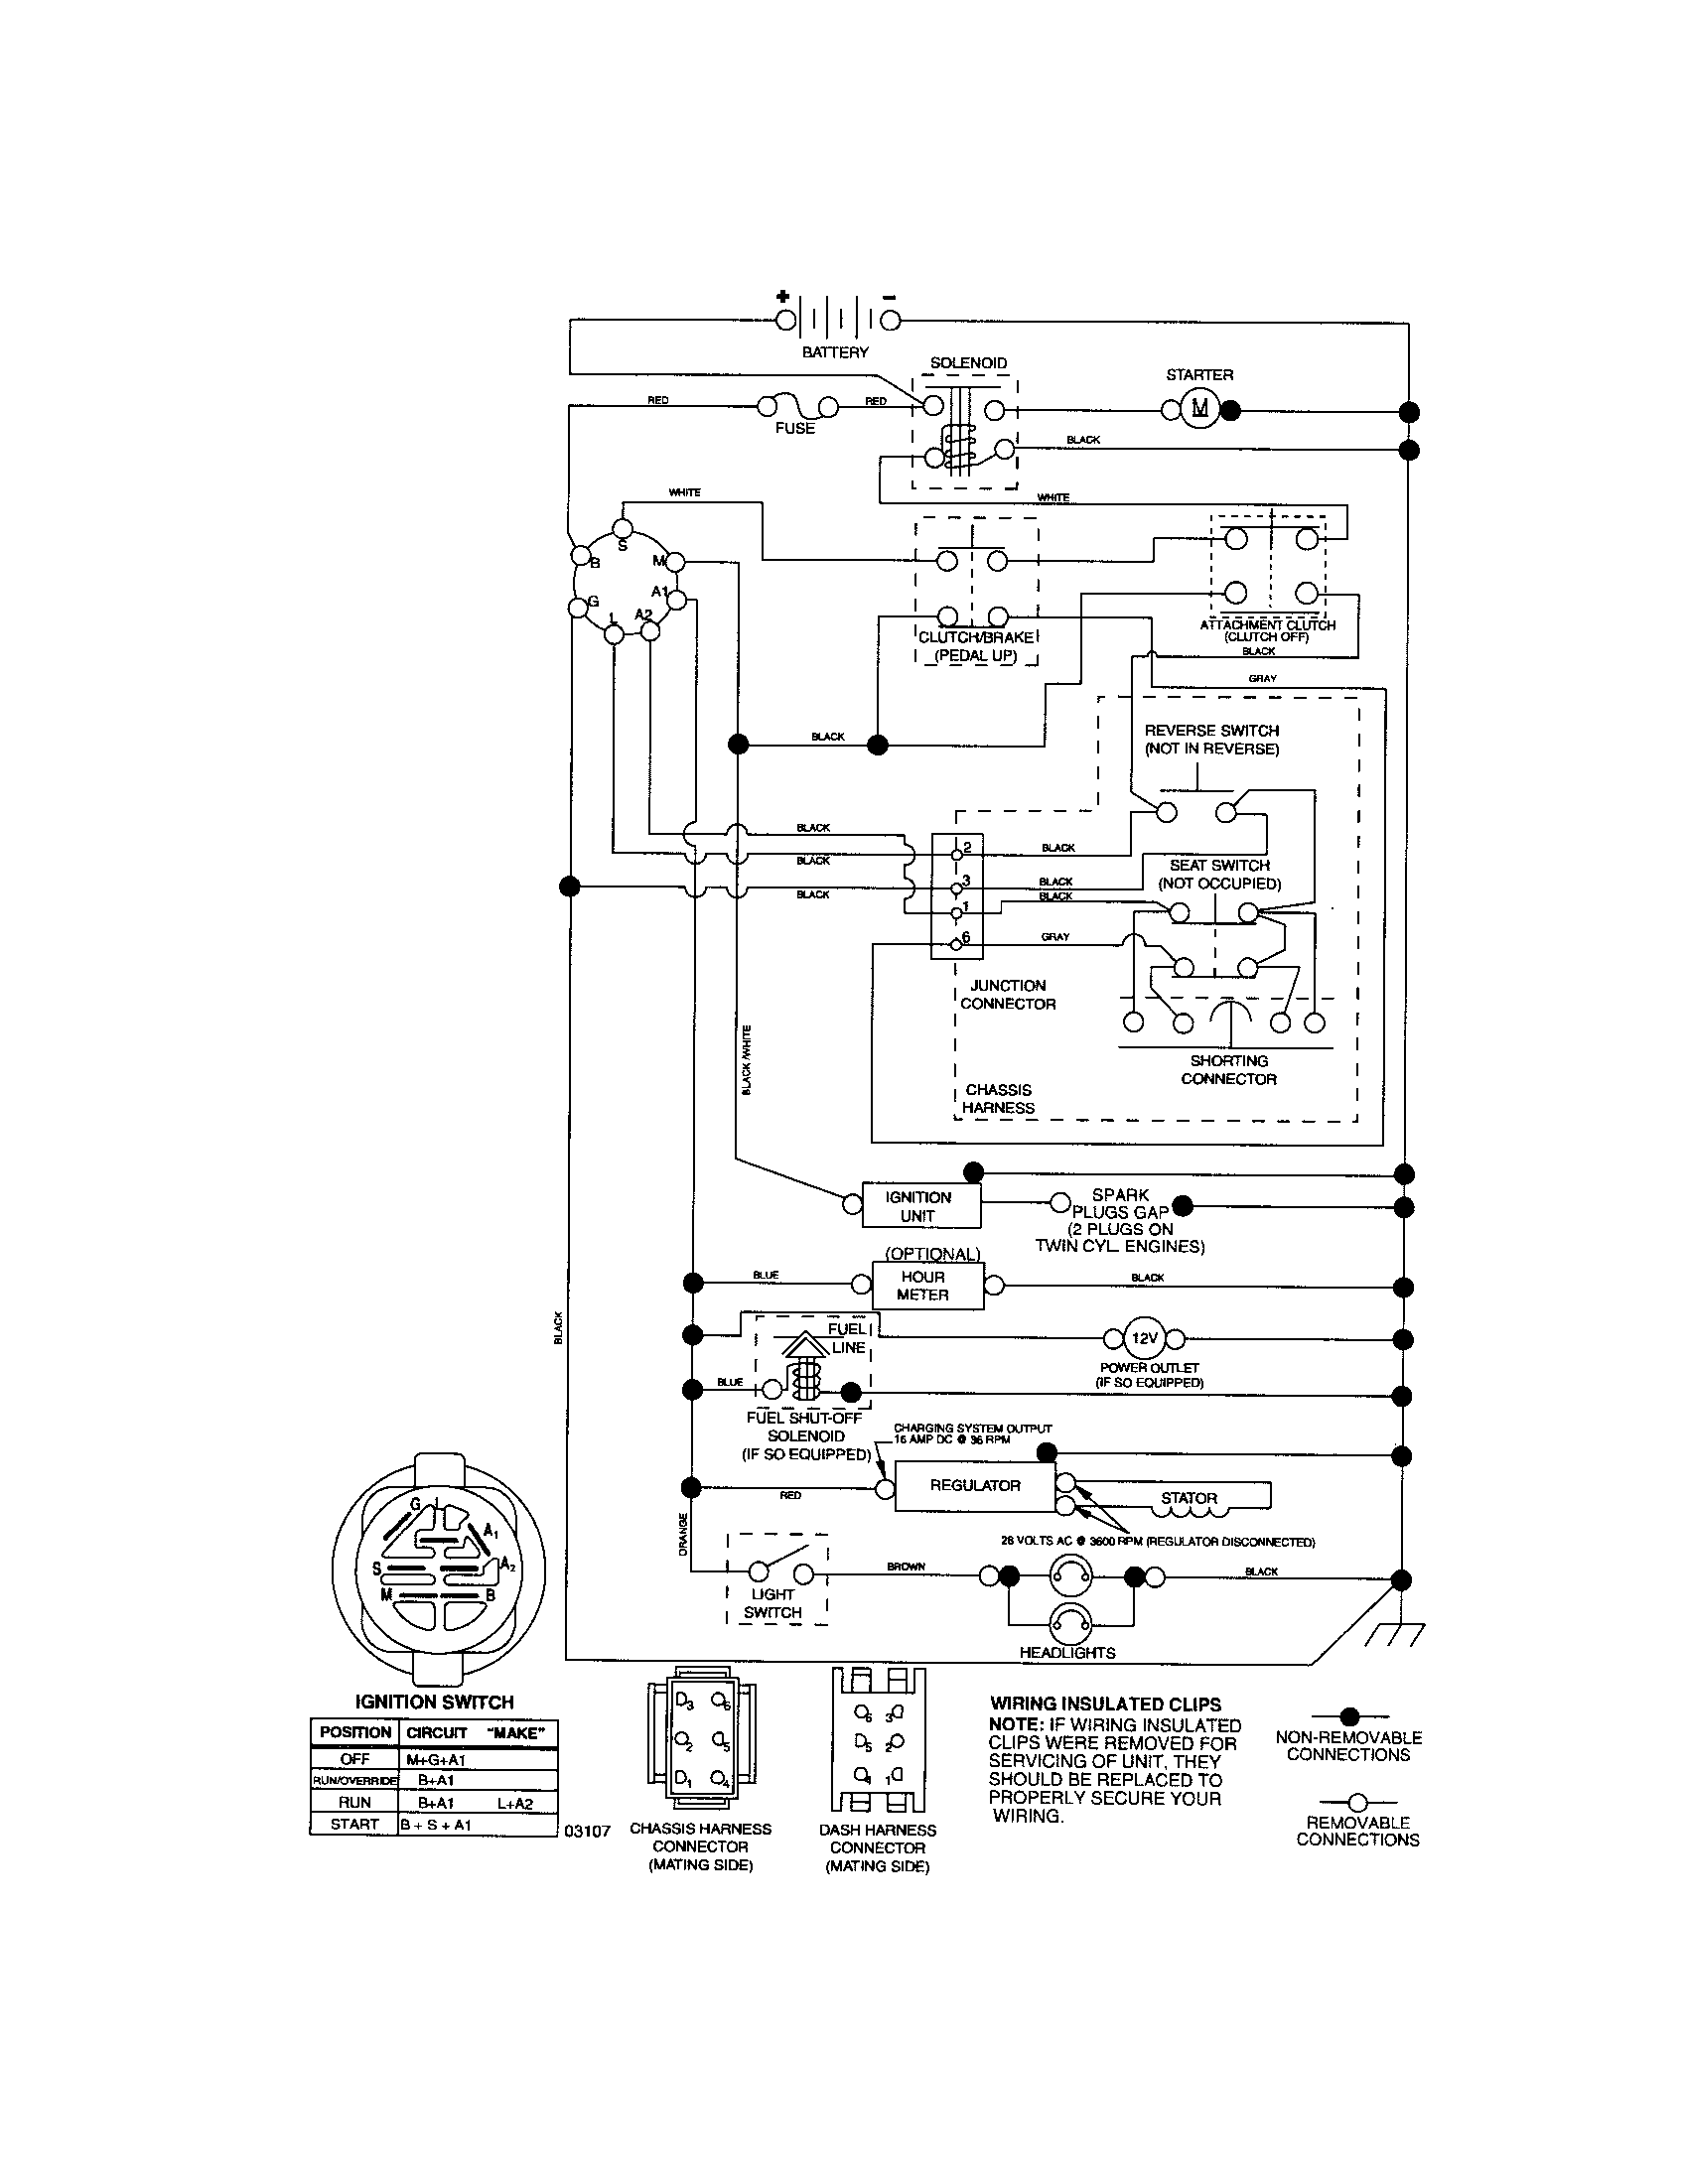 6af5f1447fd13c8443376822ddc1e105 craftsman riding mower electrical diagram wiring diagram Trailer Wiring Diagram at eliteediting.co